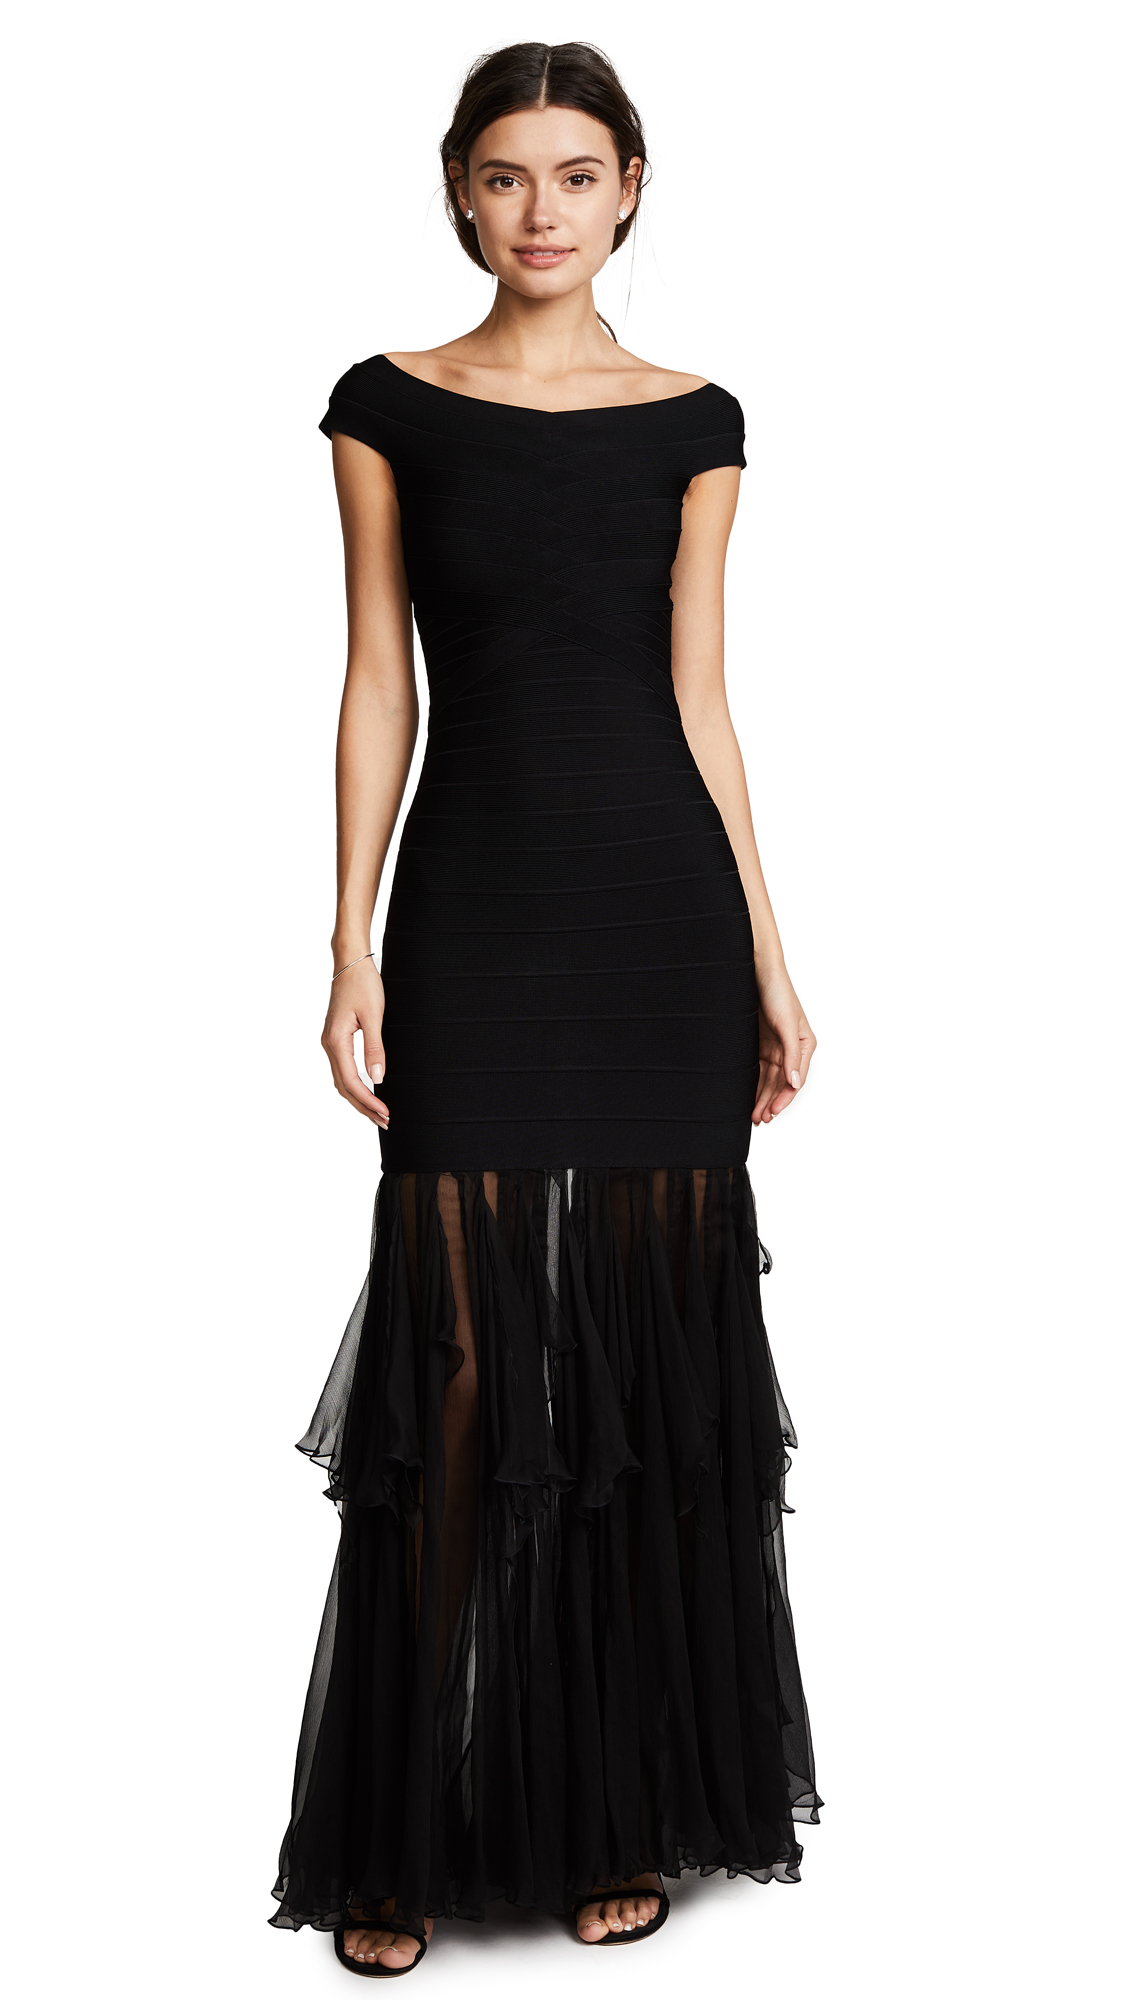 Herve Leger Roma Gown - Black